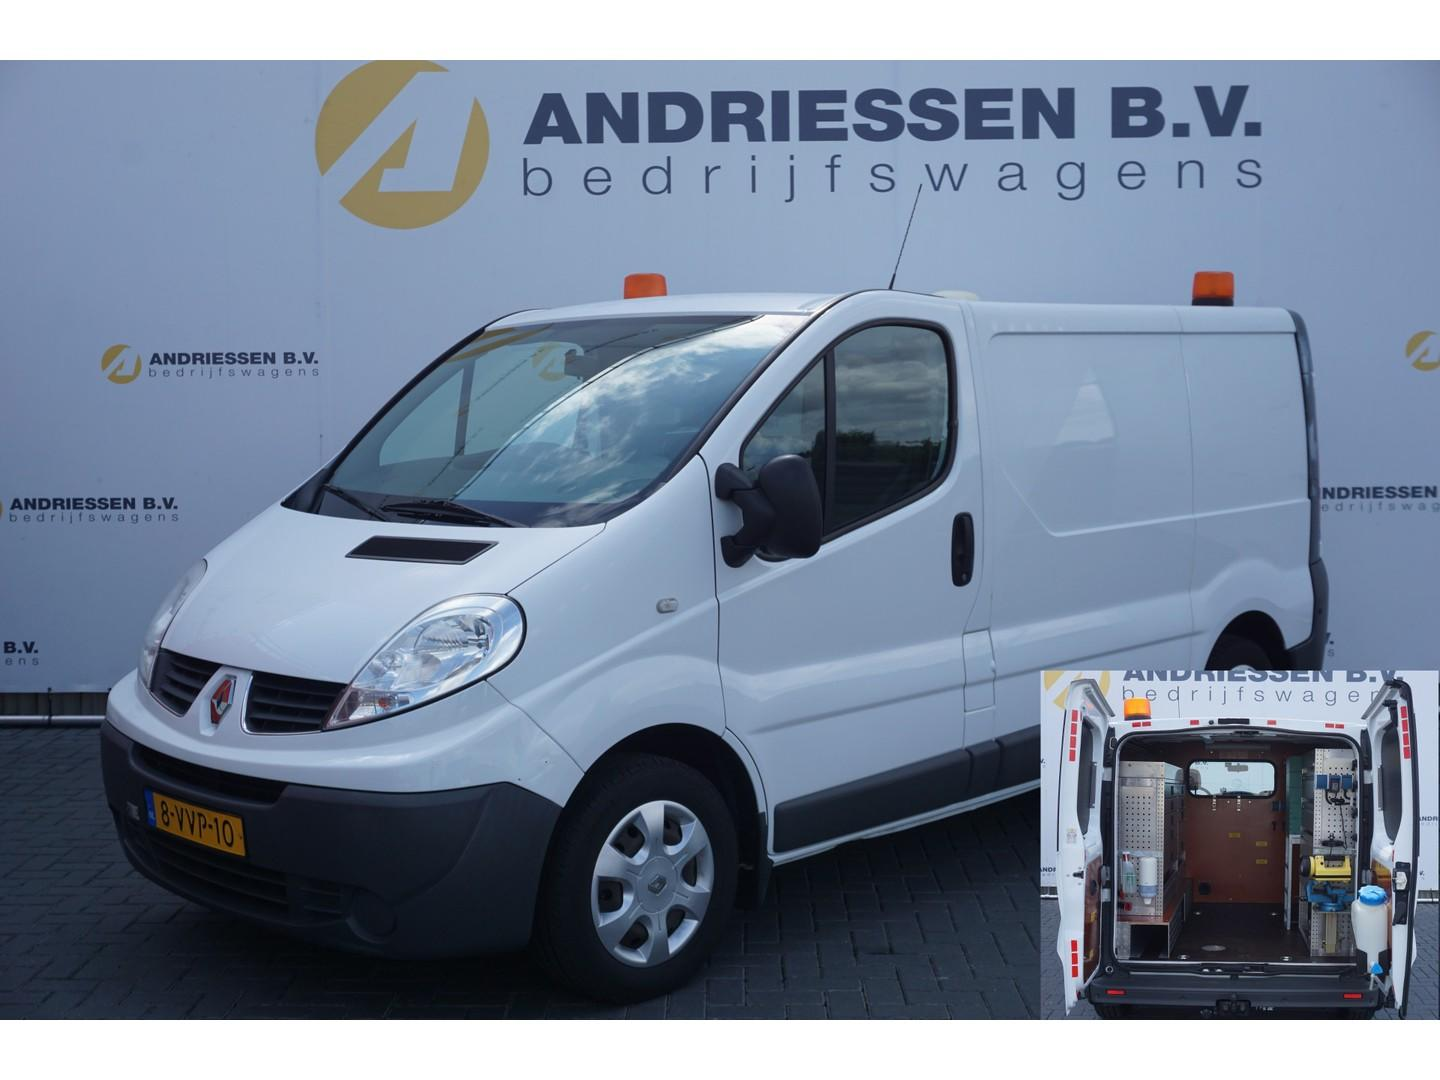 Renault Trafic 2.0 dci l1h1 eco inrichting, 230v, airco, achteruitrijcamera, trekhaak